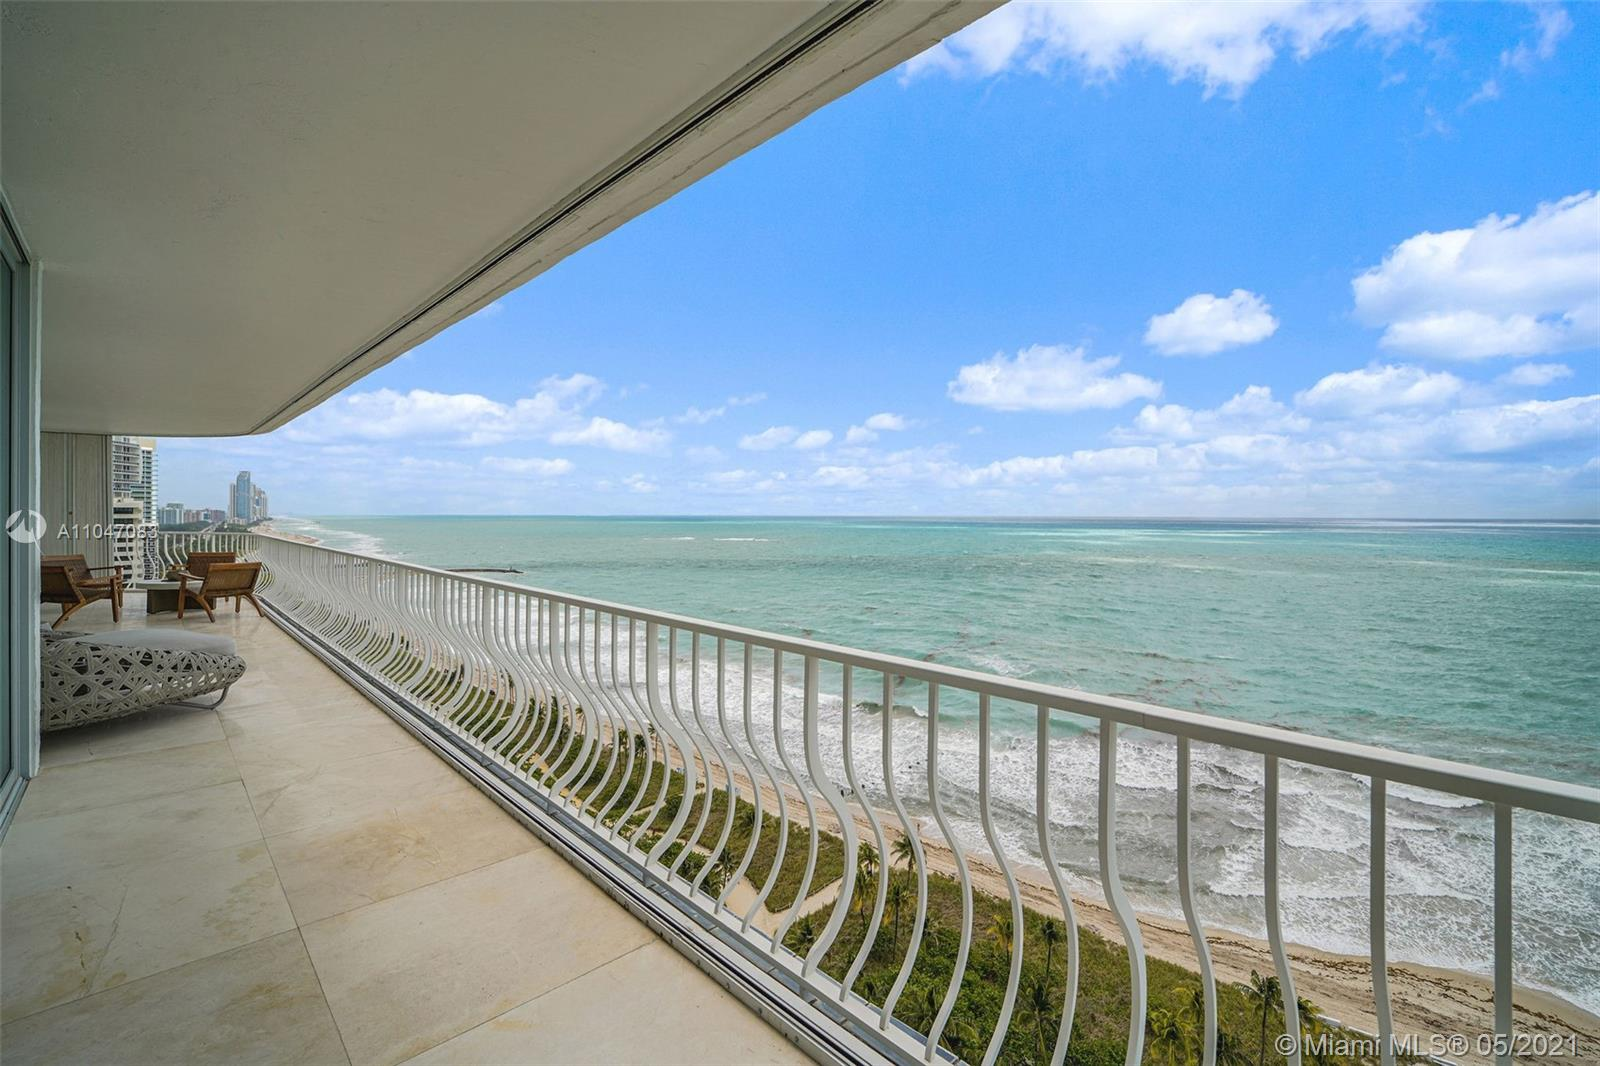 Spectacular Penthouse apartment with breathtaking views of the ocean and Miami Beach. Located in the heart of prestigious Bal Harbour, this gorgeous and spacious masterpiece was completely renovated in 2015. The renovation includes a re-designed floor plan, new electrical, new plumbing, new AC HVAC units, 36x36 marble flooring throughout, Quartz and Onyx countertops, custom-built grain-matched walnut cabinetry, control-4  Intelligent audio/video system throughout the apartment and much more.  The apartment is move-in ready! Sold furnished and includes a highly desired, premium location poolside cabana with a full bathroom. Building just completed a major renovation including a new roof. No assessments and low maintenance. 1 Assigned Parking Space & 1 Valet Parking.